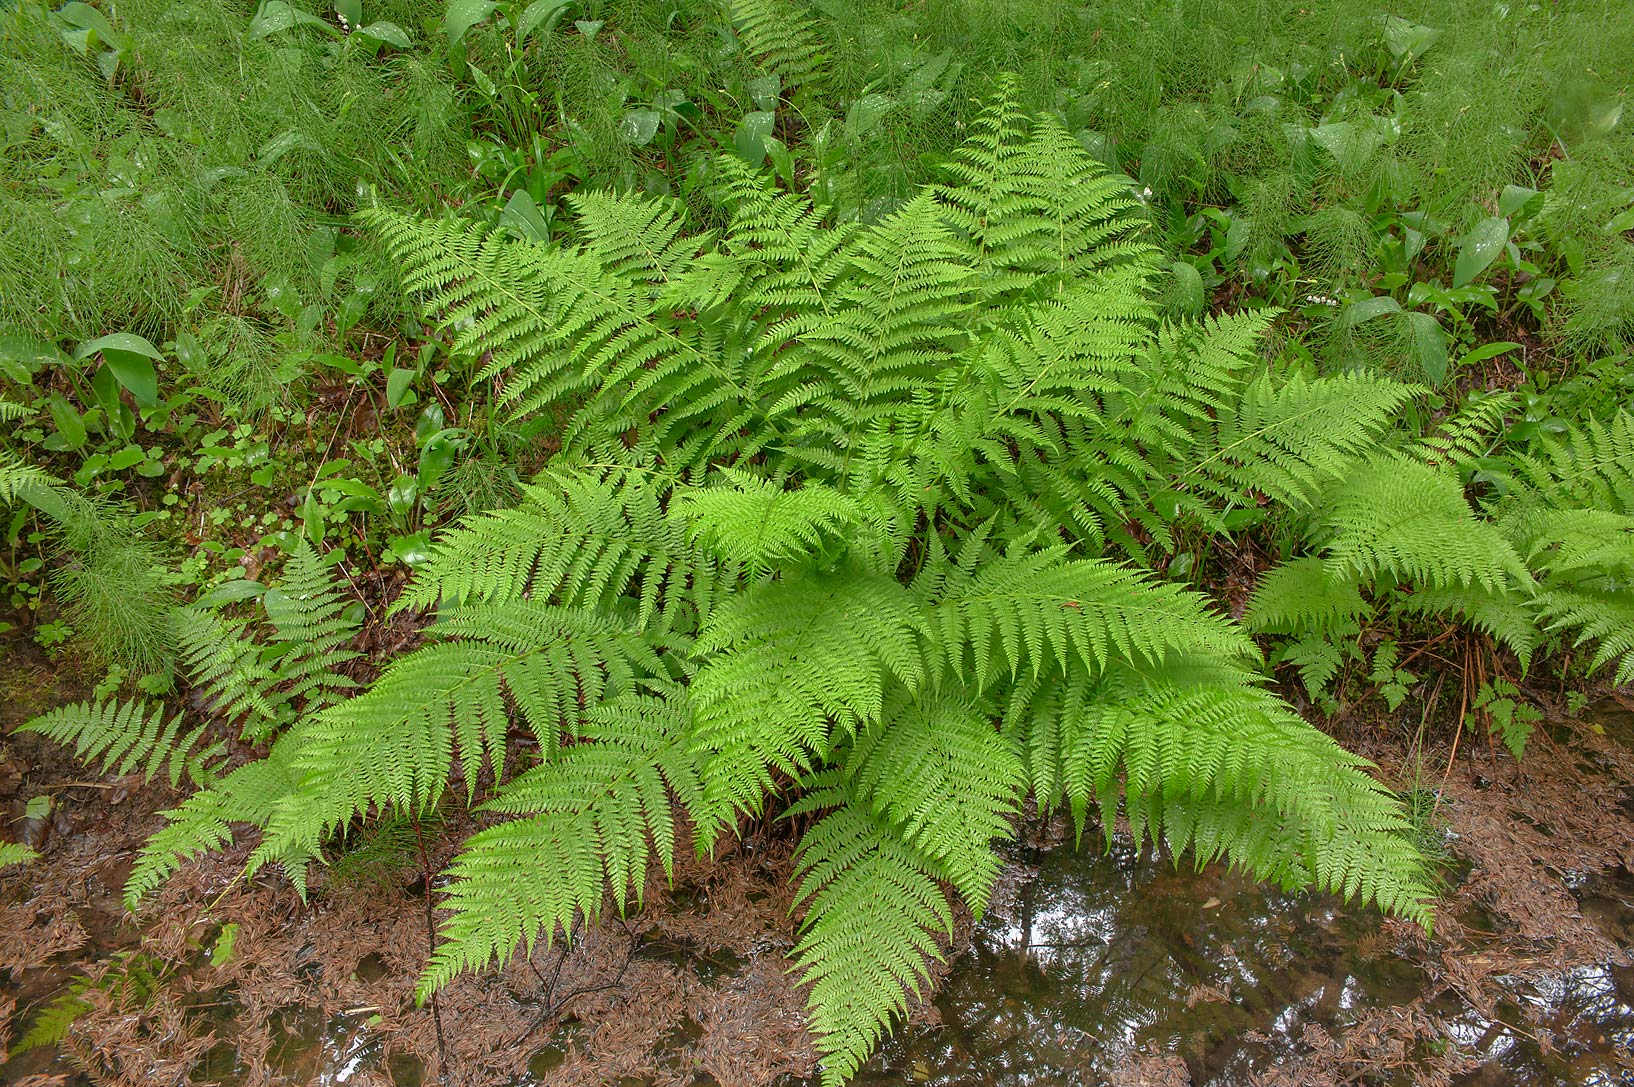 Fern in a ditch near Angliyskaya Alley in...suburb of St.Petersburg, Russia